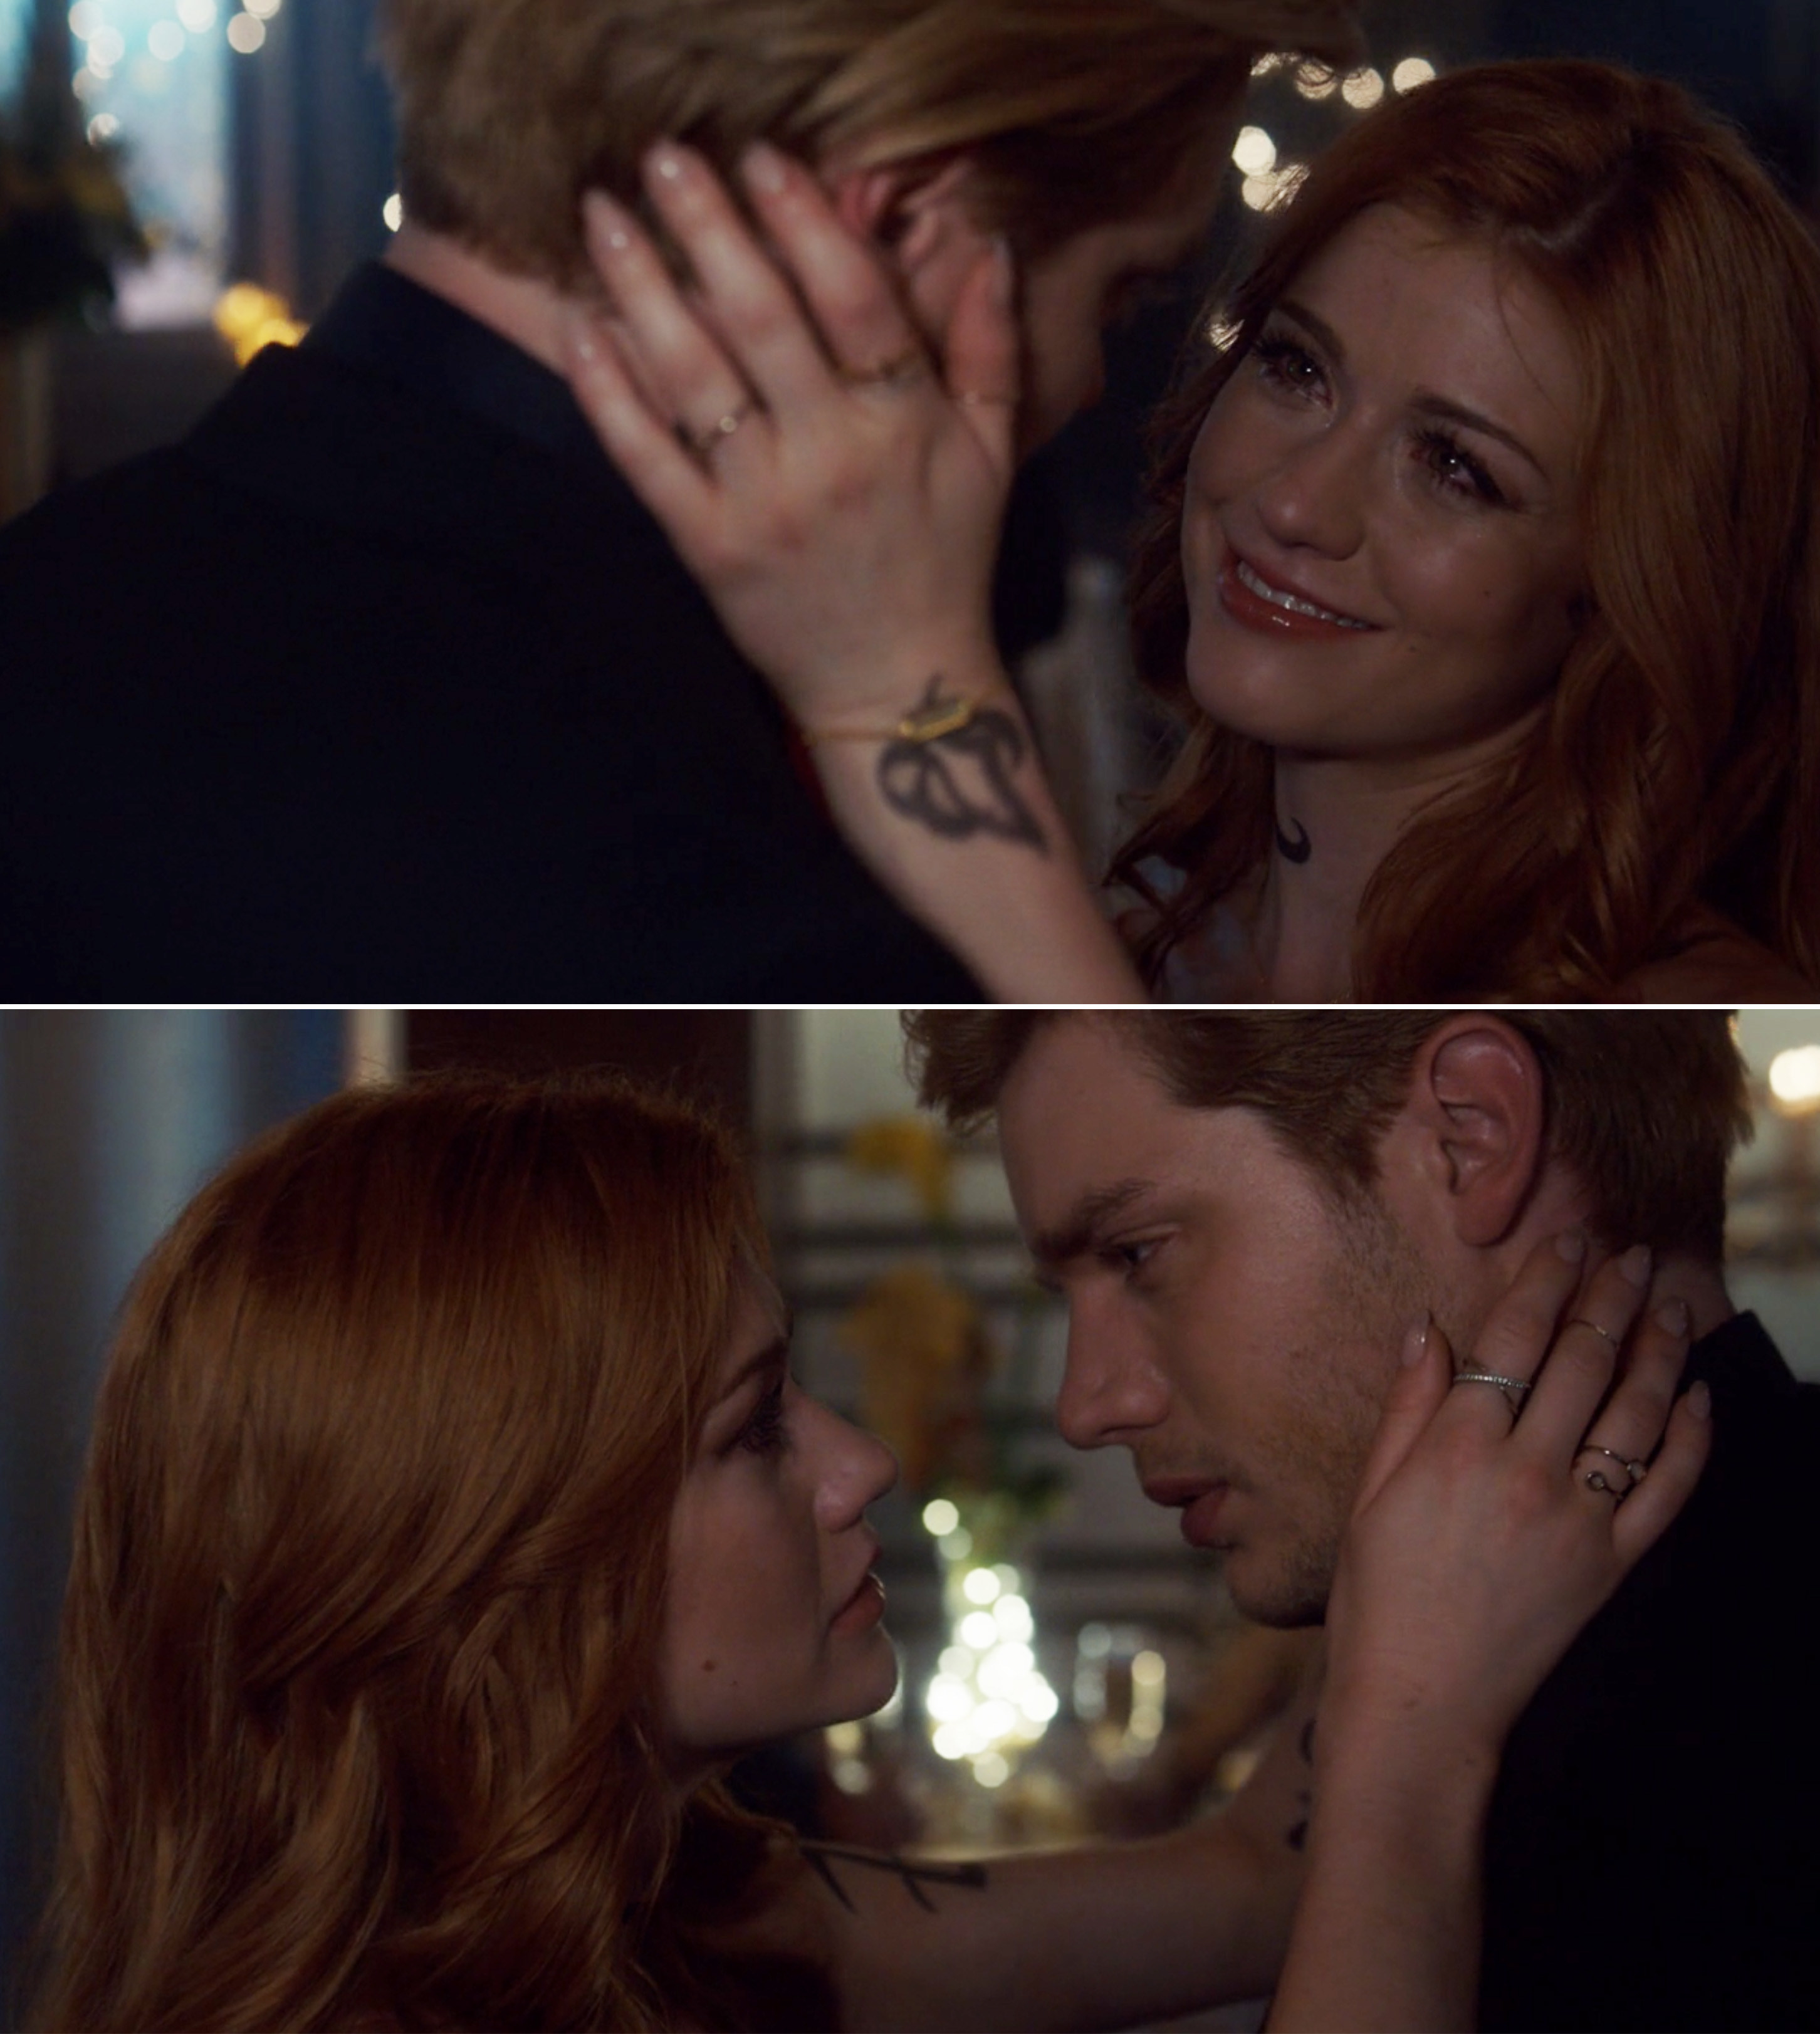 Clary and Jace dancing